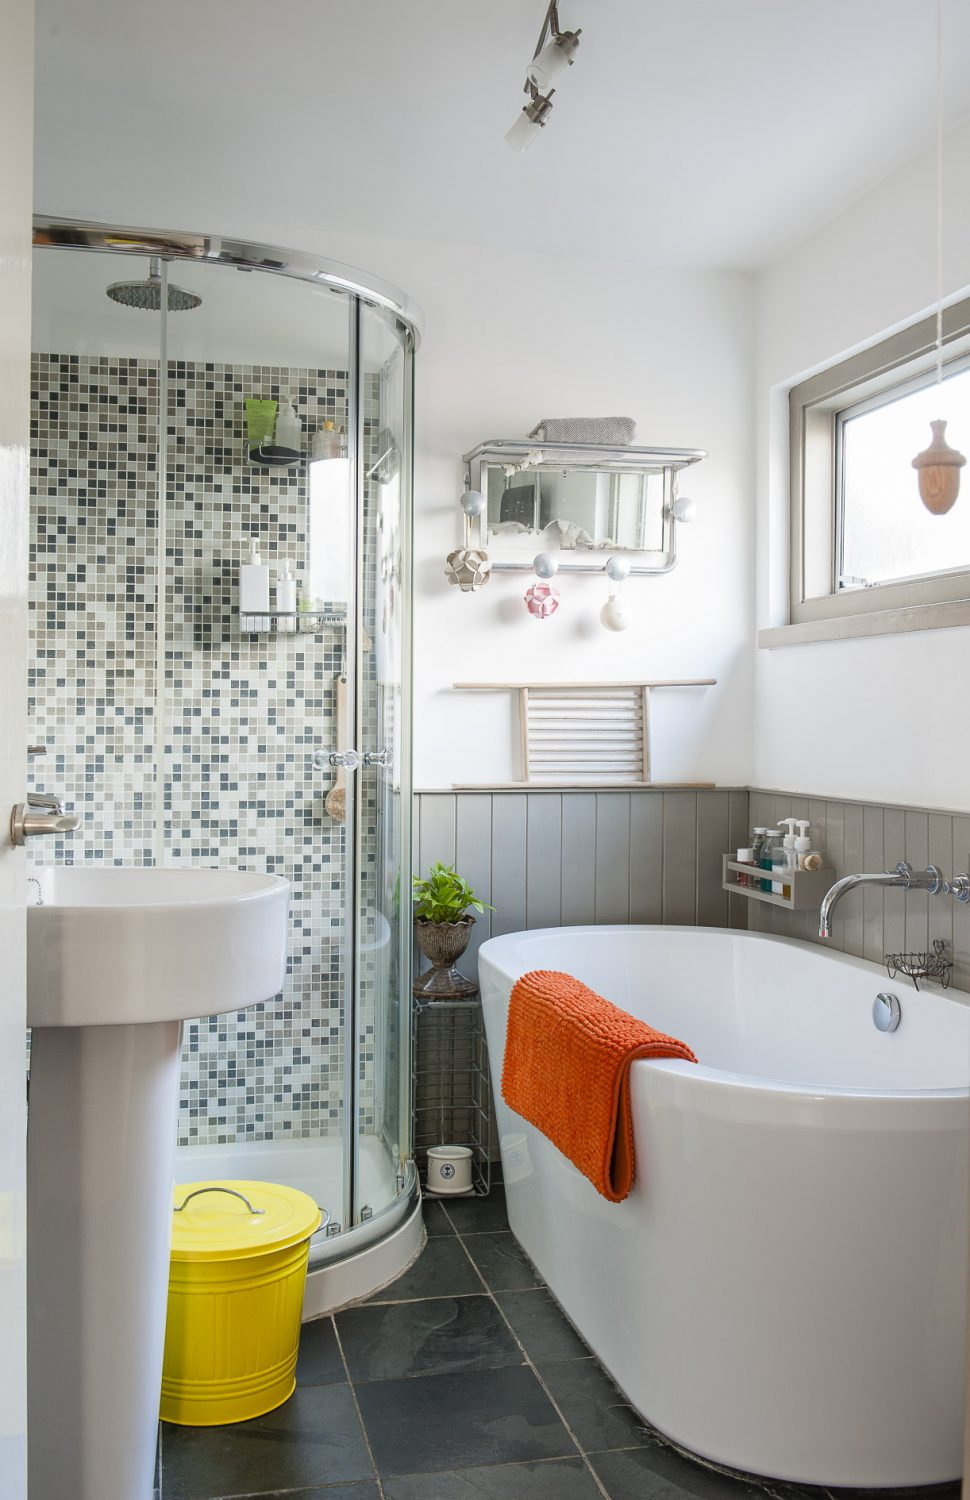 The family bathroom has been brought into the 21st century with modern fixtures and fittings. Richard has added wrap around tongue and groove, now painted a French grey to complement the slate flooring and mosaic tiles of the shower. Both the basin and free-standing bath are from eBay.